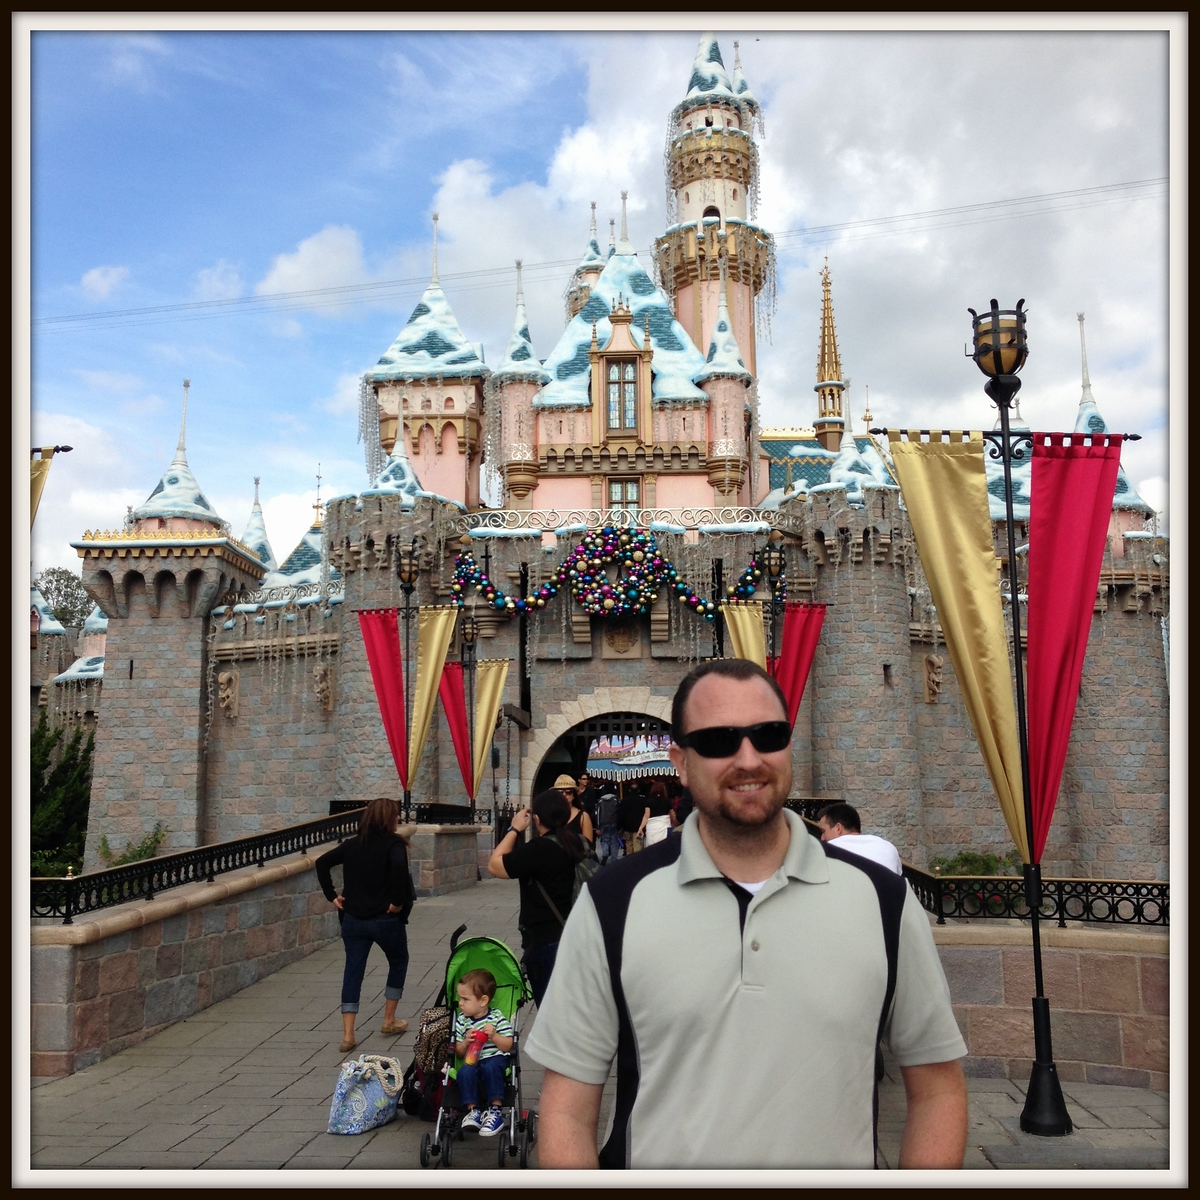 Dan in Front of a Snow-Capped Sleeping Beauty Castle at Disneyland in November 2014